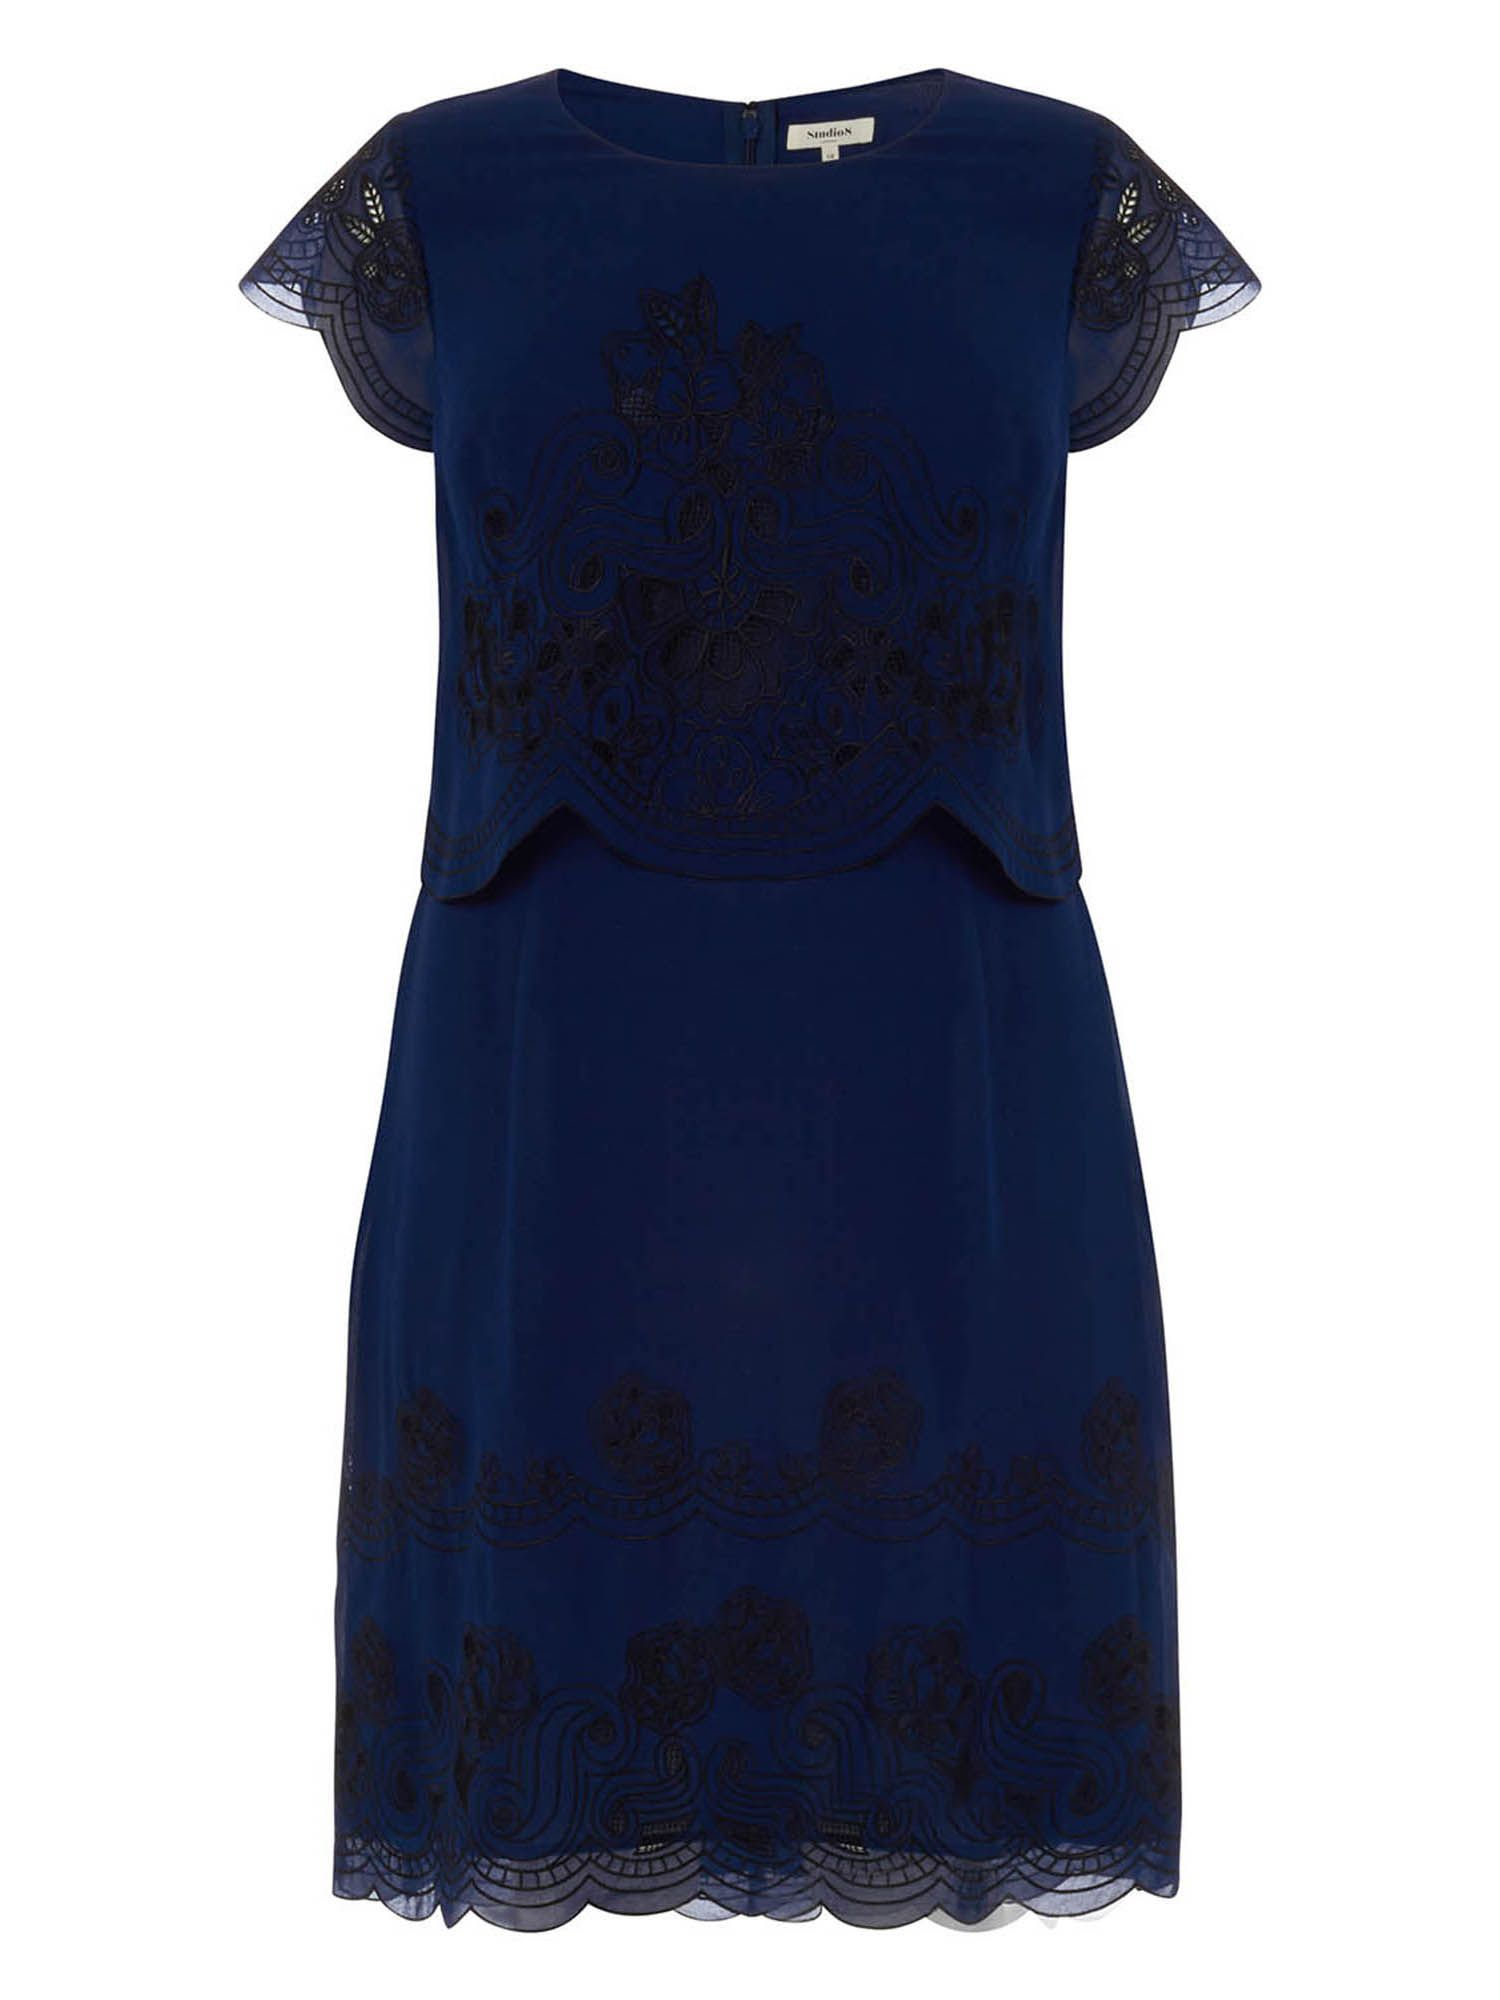 Studio 8 Marlin Dress, Blue